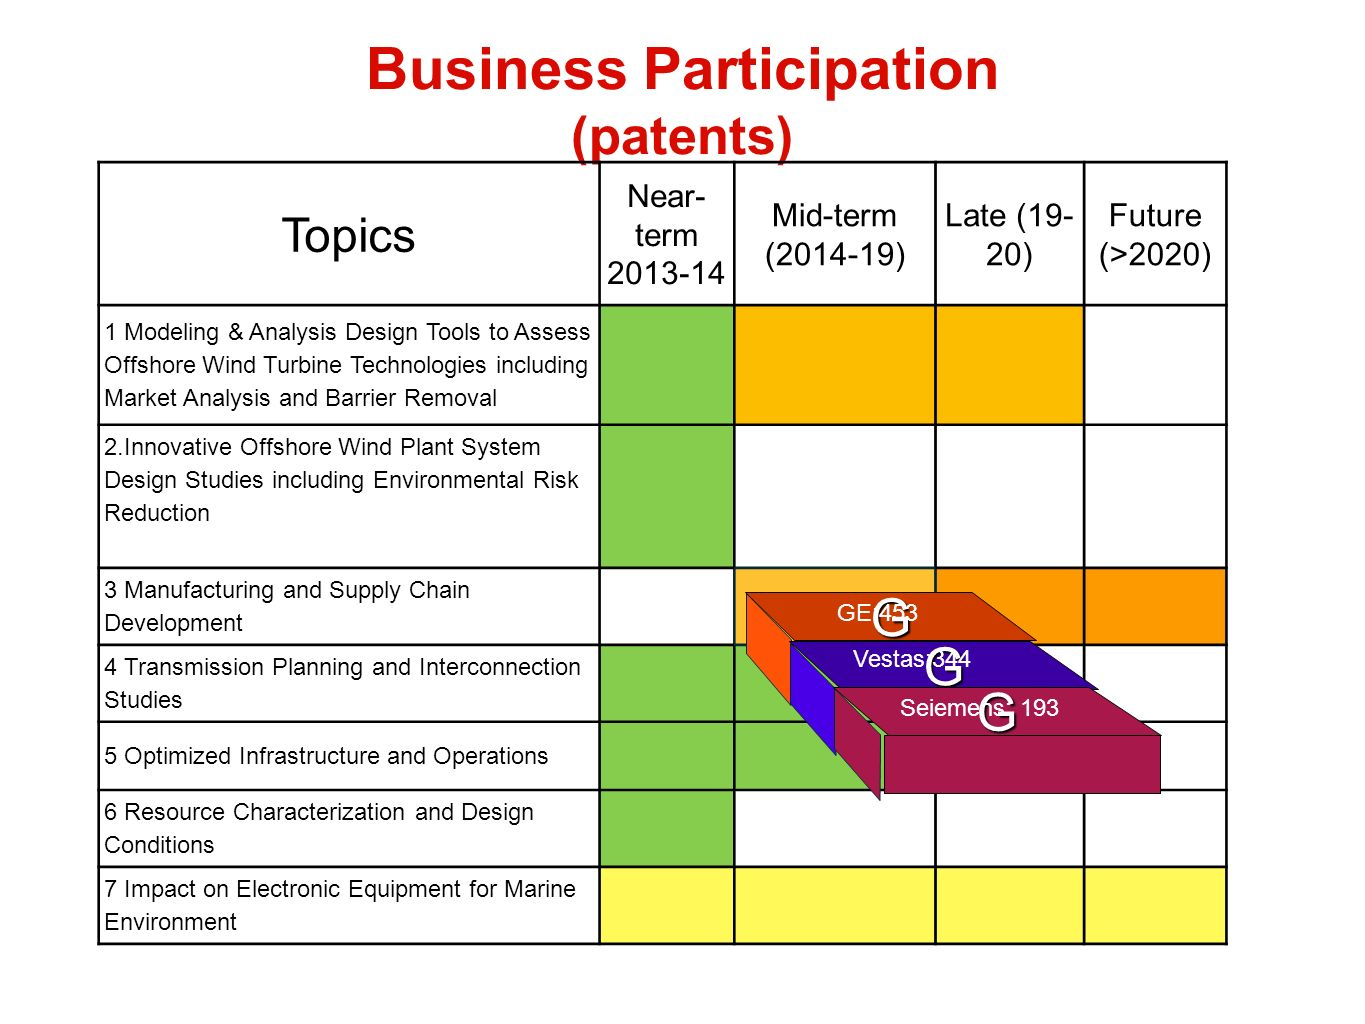 Business Participation (patents) Topics Near- term 2013-14 Mid-term (2014-19) Late (19- 20) Future (>2020) 1 Modeling & Analysis Design Tools to Assess Offshore Wind Turbine Technologies including Market Analysis and Barrier Removal 2.Innovative Offshore Wind Plant System Design Studies including Environmental Risk Reduction 3 Manufacturing and Supply Chain Development 4 Transmission Planning and Interconnection Studies 5 Optimized Infrastructure and Operations 6 Resource Characterization and Design Conditions 7 Impact on Electronic Equipment for Marine Environment G GE:453 G G Seiemens: 193 Vestas:344